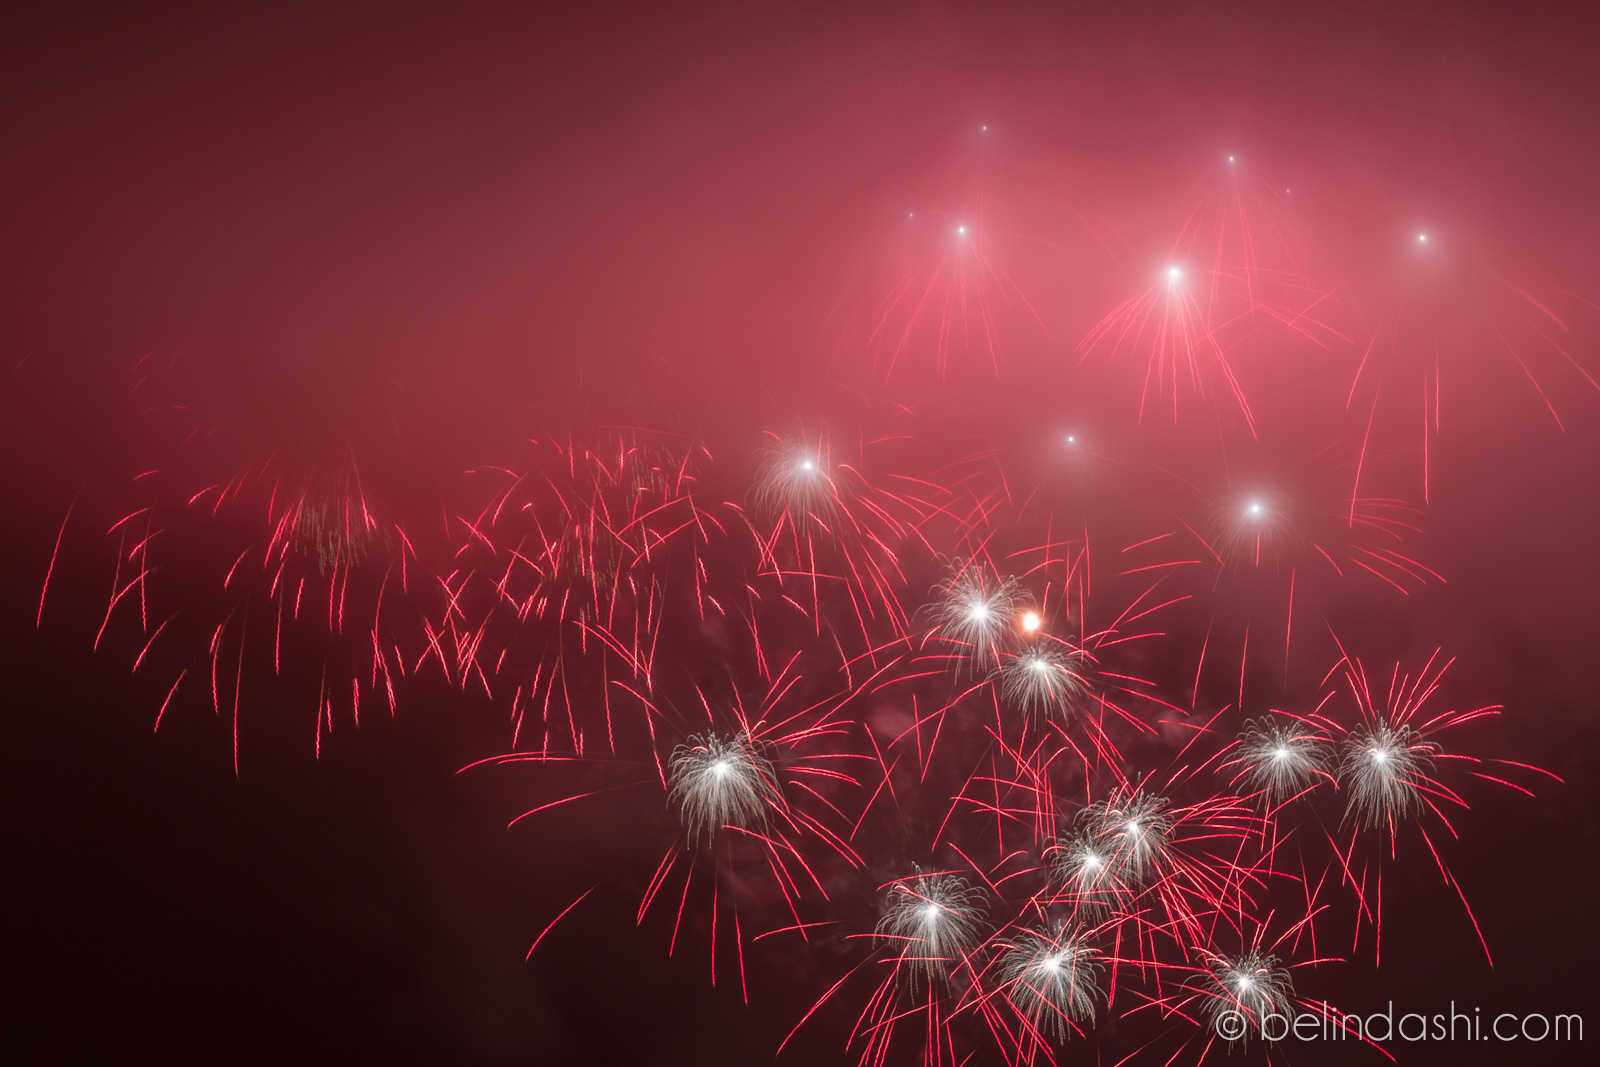 July 4th fireworks in San Francisco 2014-010, ISO200, 148mm, f/9, 5sec